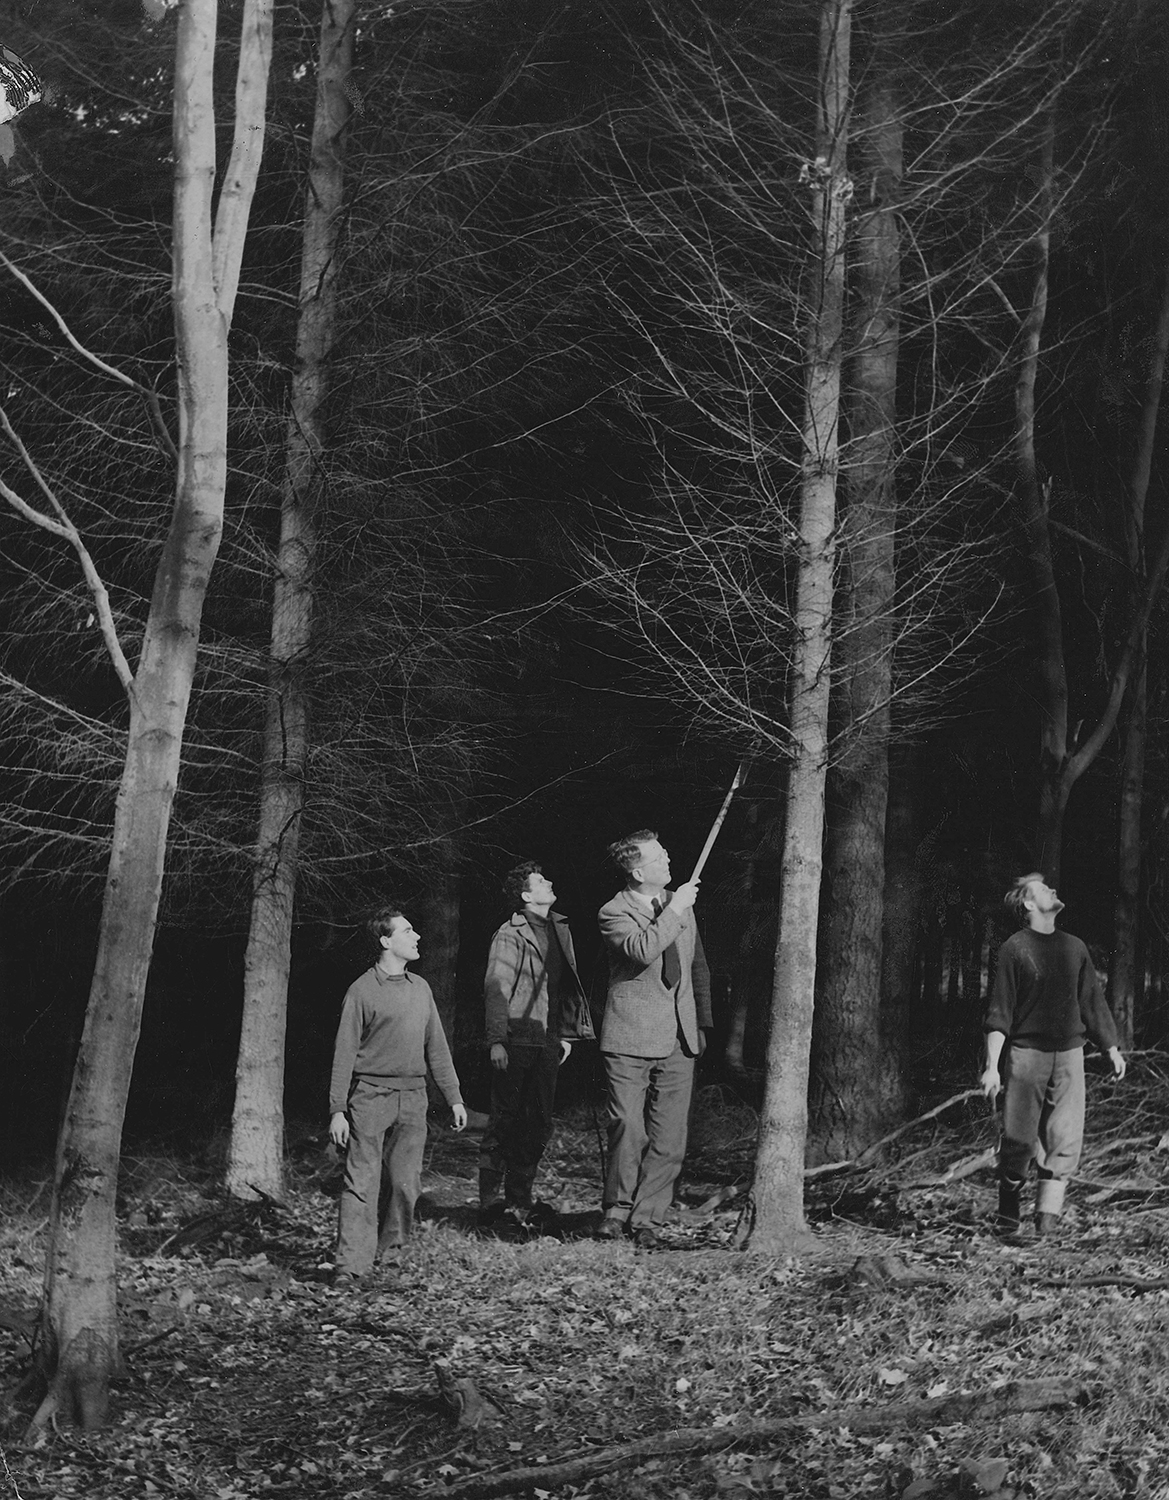 Philippa Klaiber - Vorest the south west collective of photography people stood looking at tree